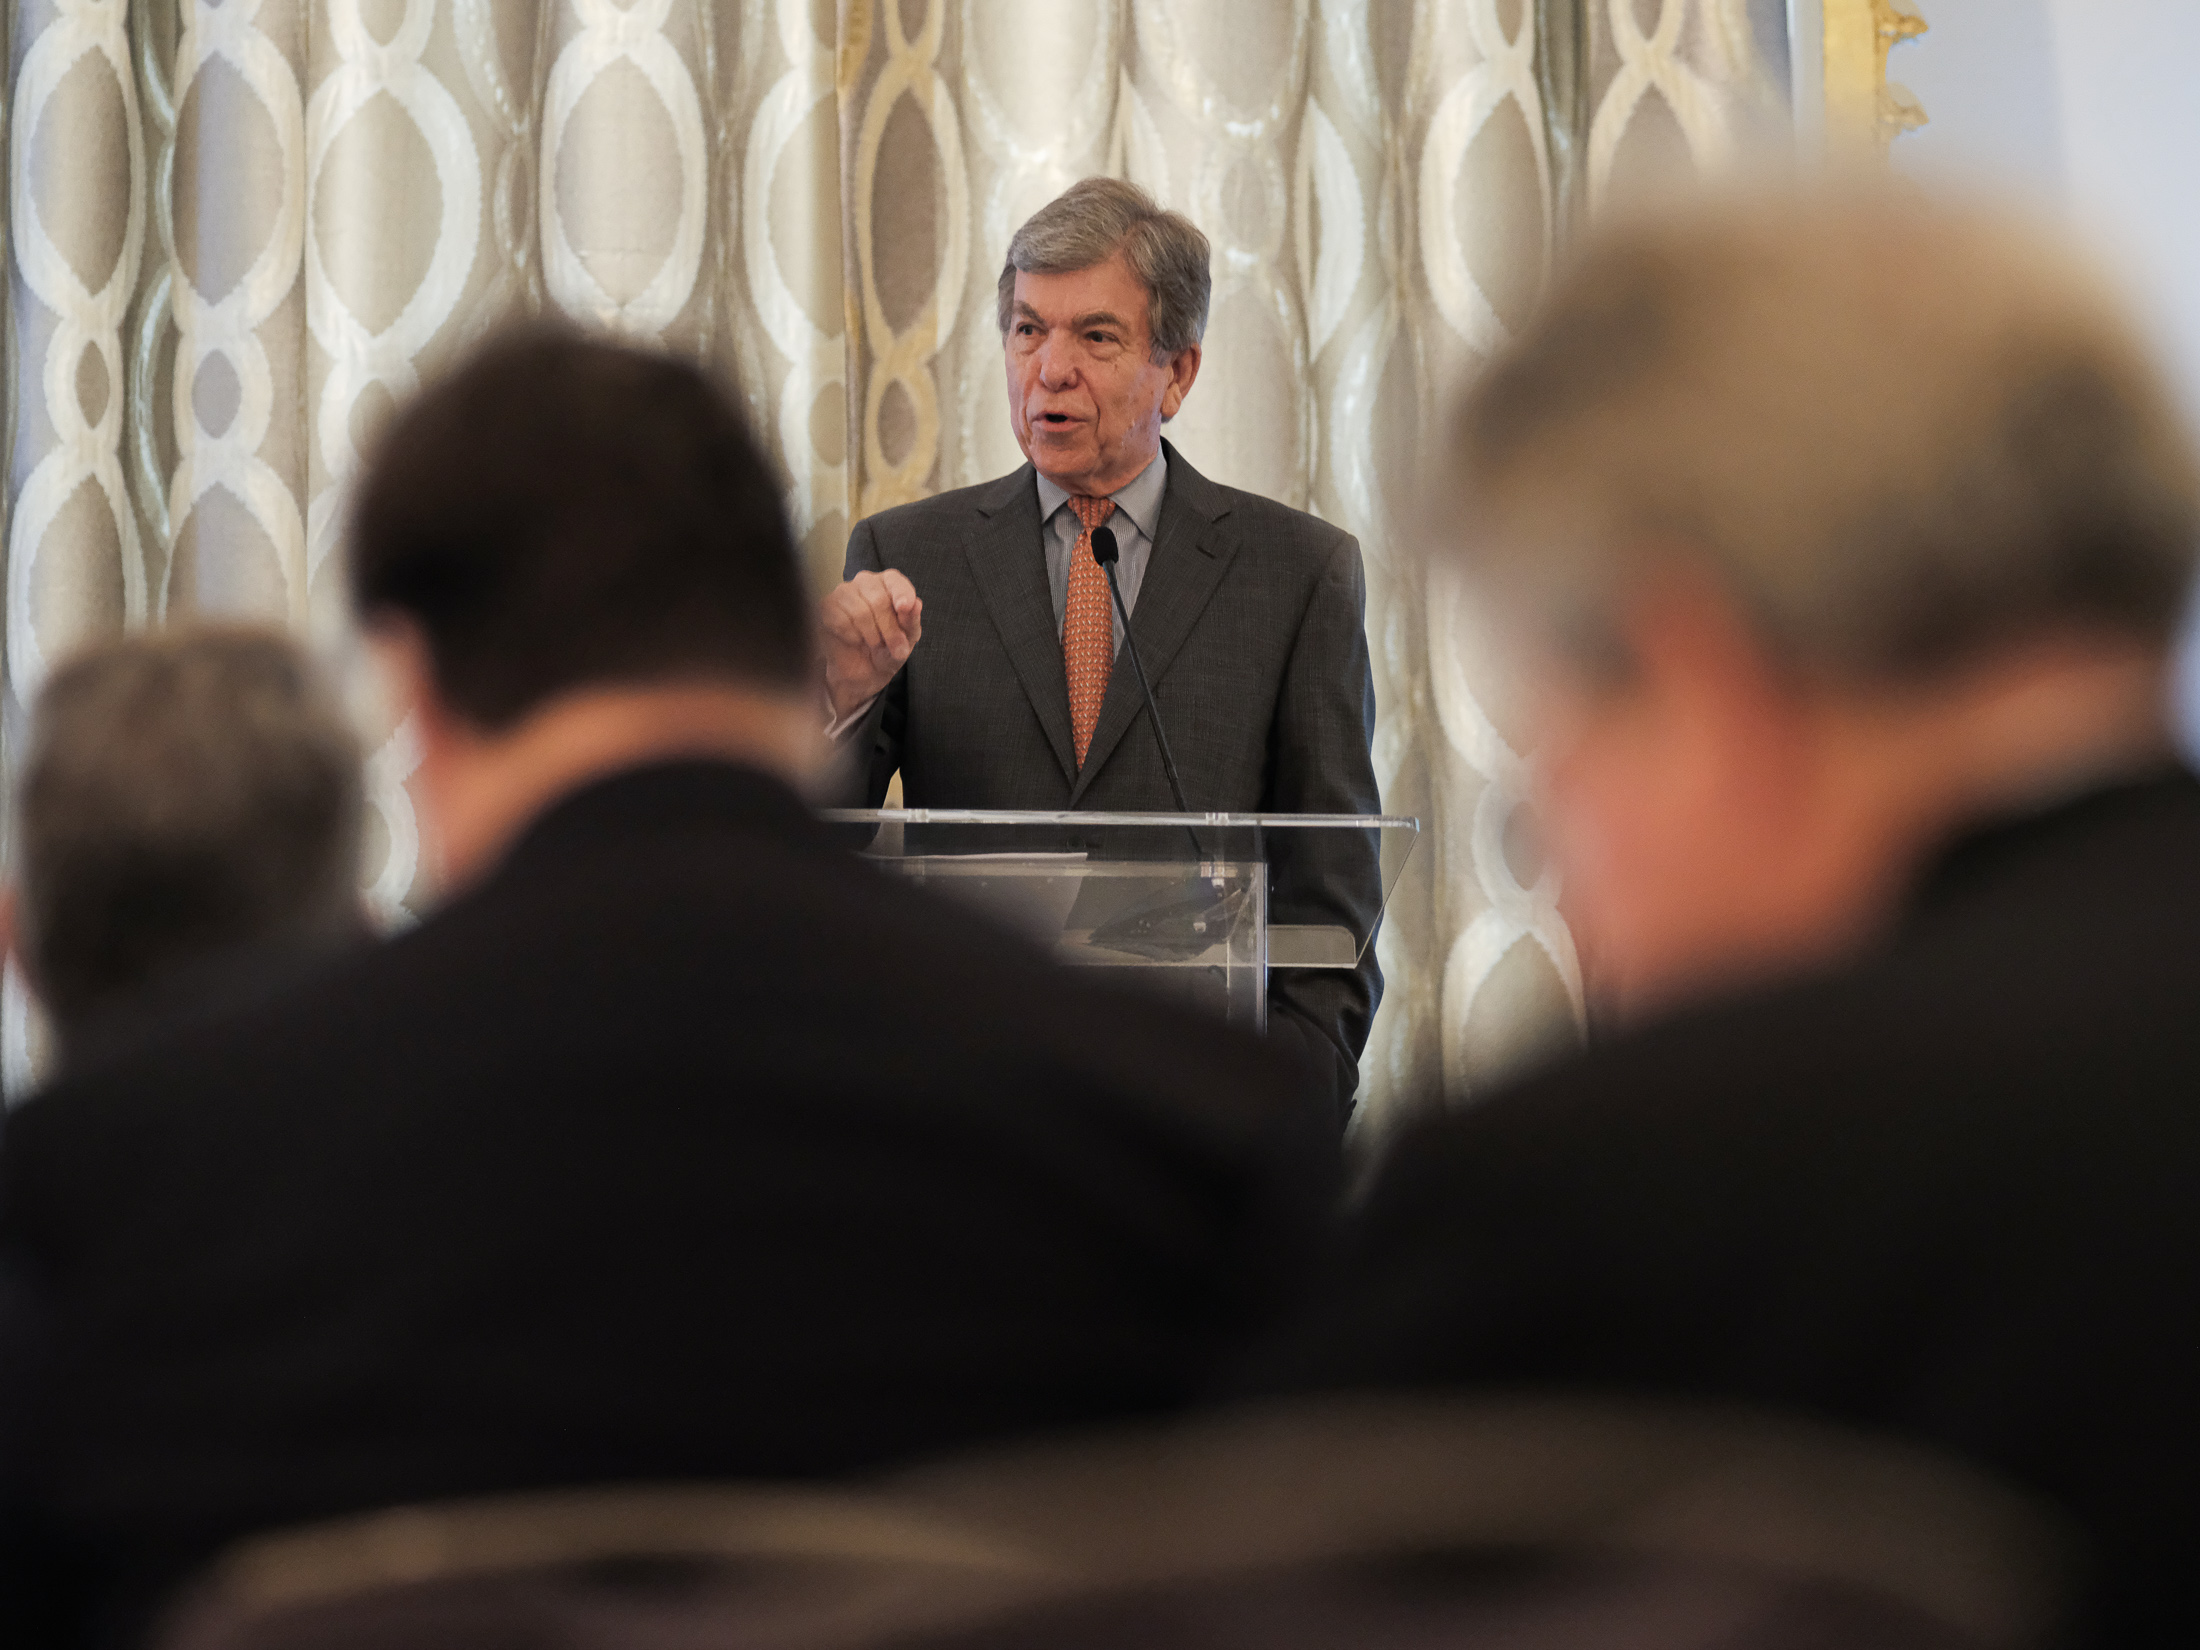 dc-conference-photographer-1445.jpg